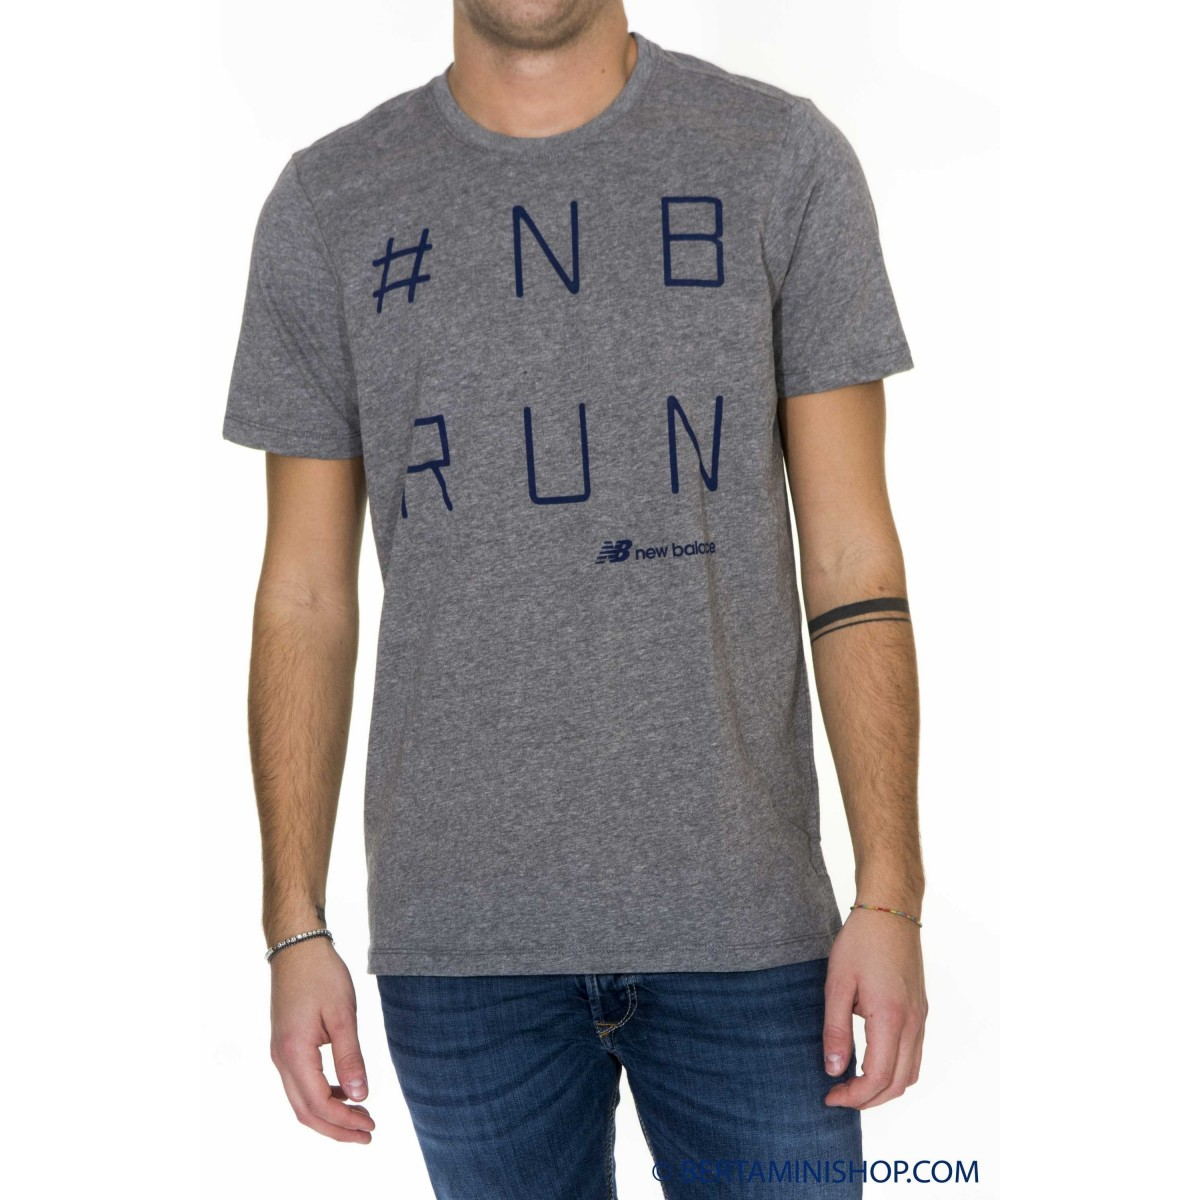 T-Shirt New Balance Manner - 16S103 T-Shirt